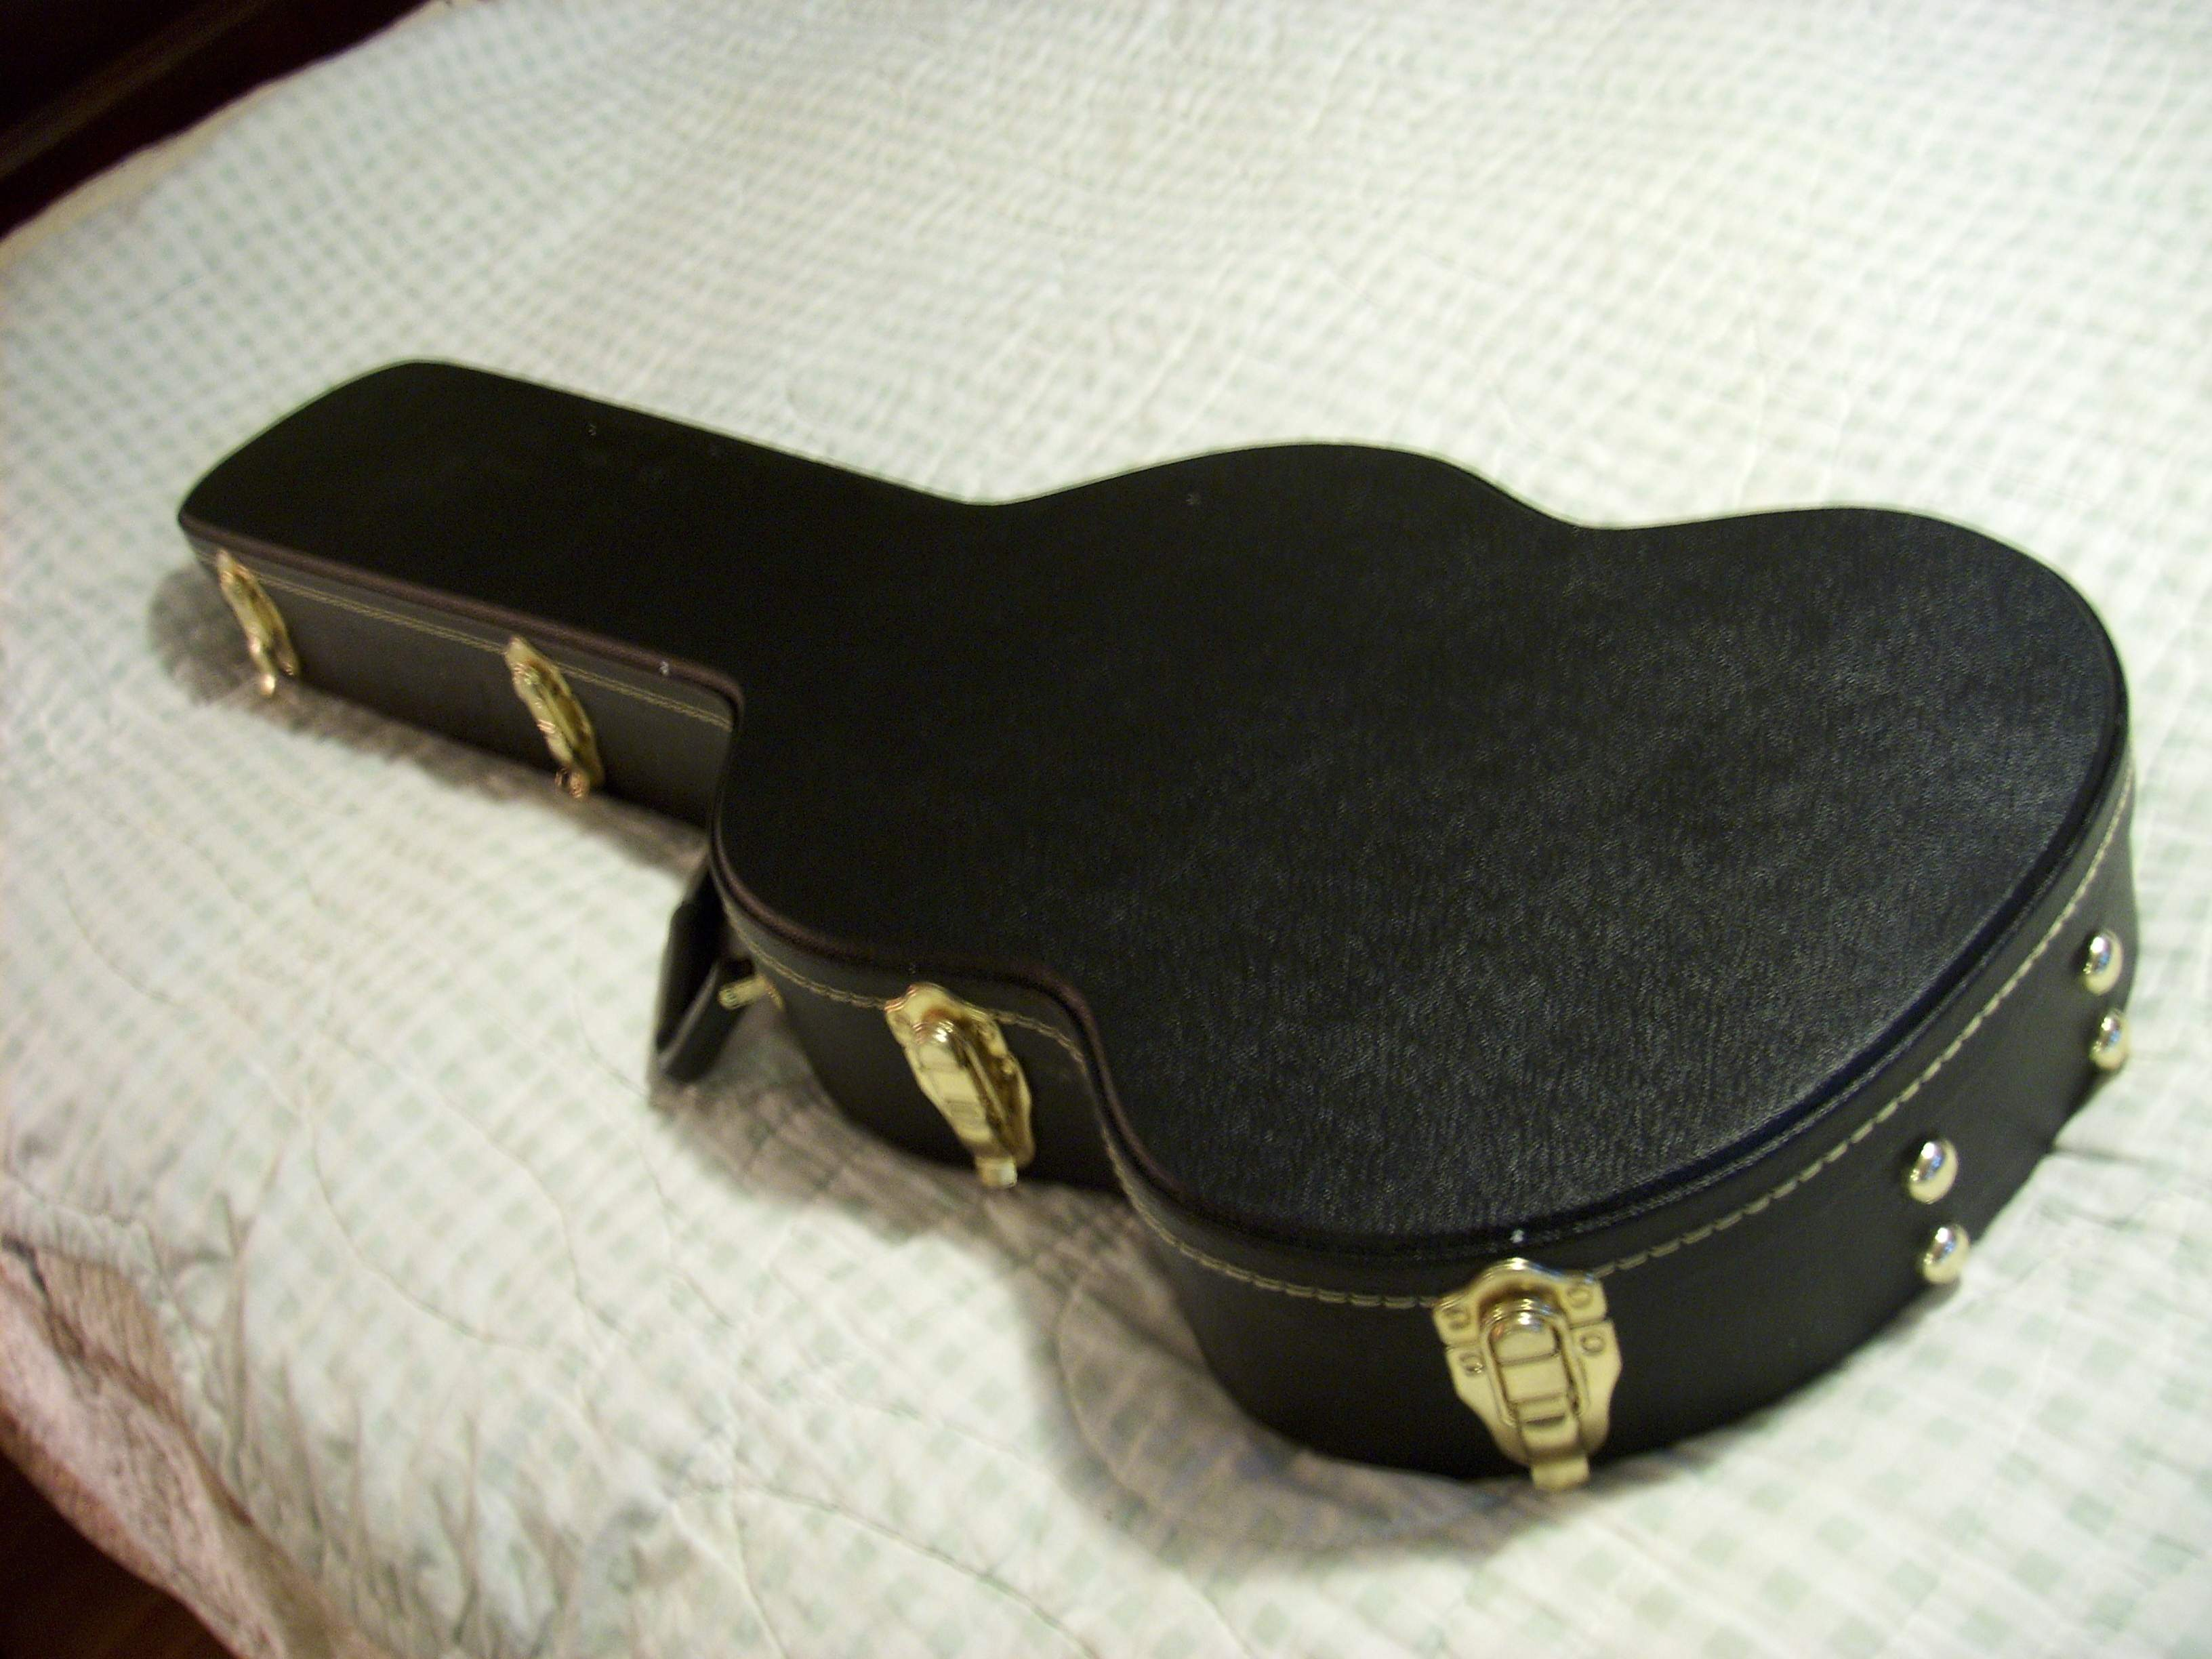 for sale nice hard shell case for 1965 gibson ebo bass guitar. Black Bedroom Furniture Sets. Home Design Ideas